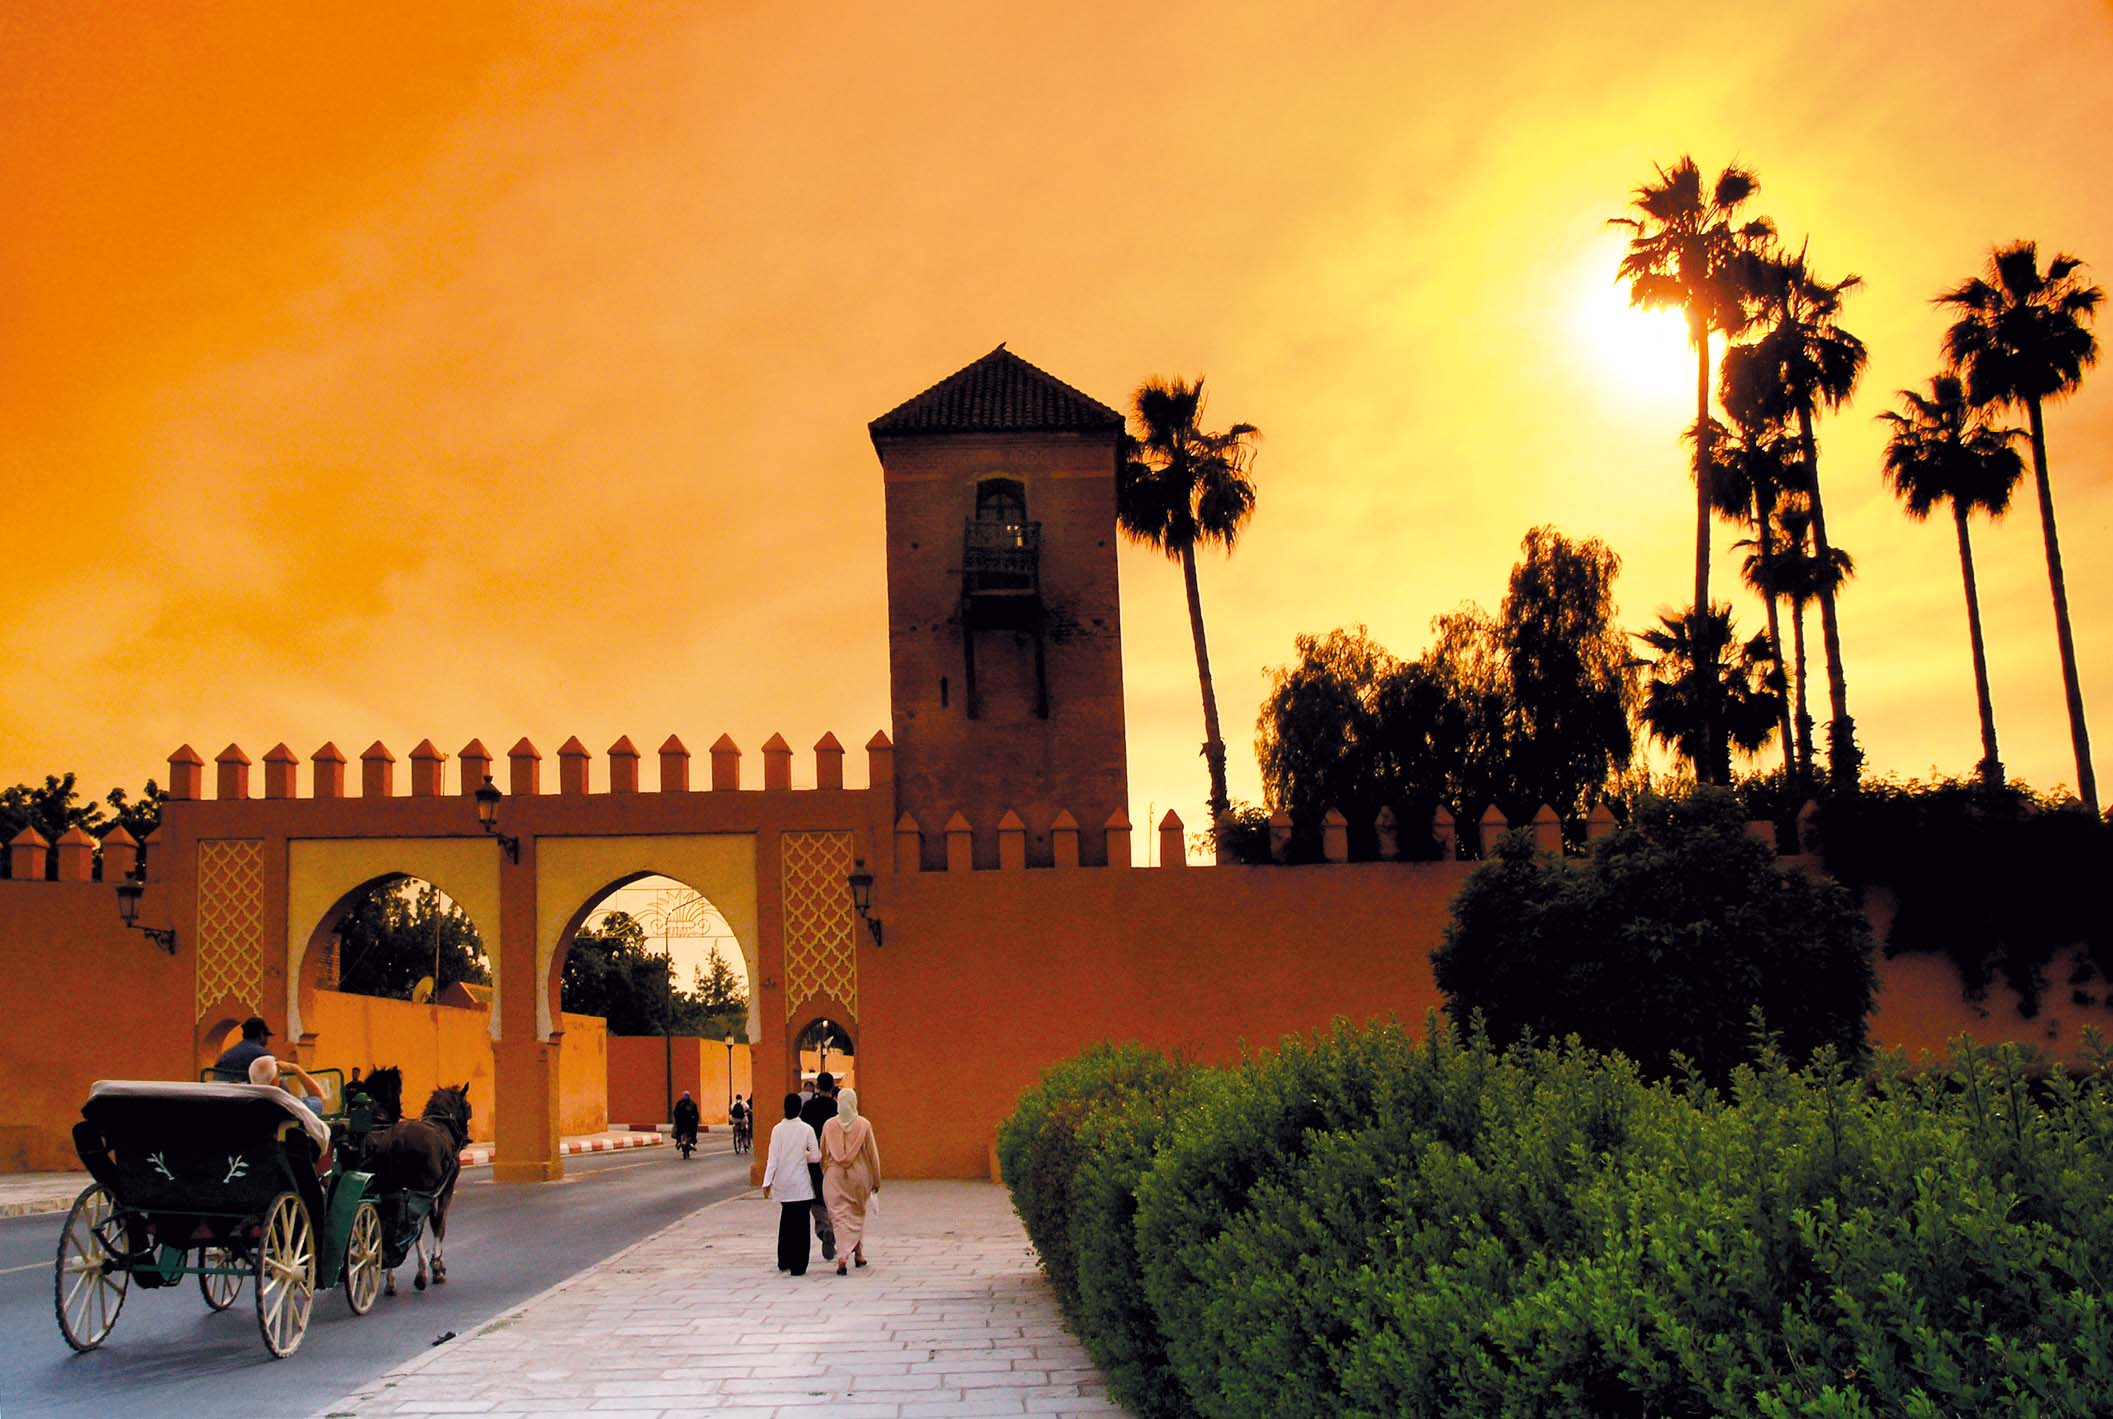 Sunset Over Stylized Building in Morocco